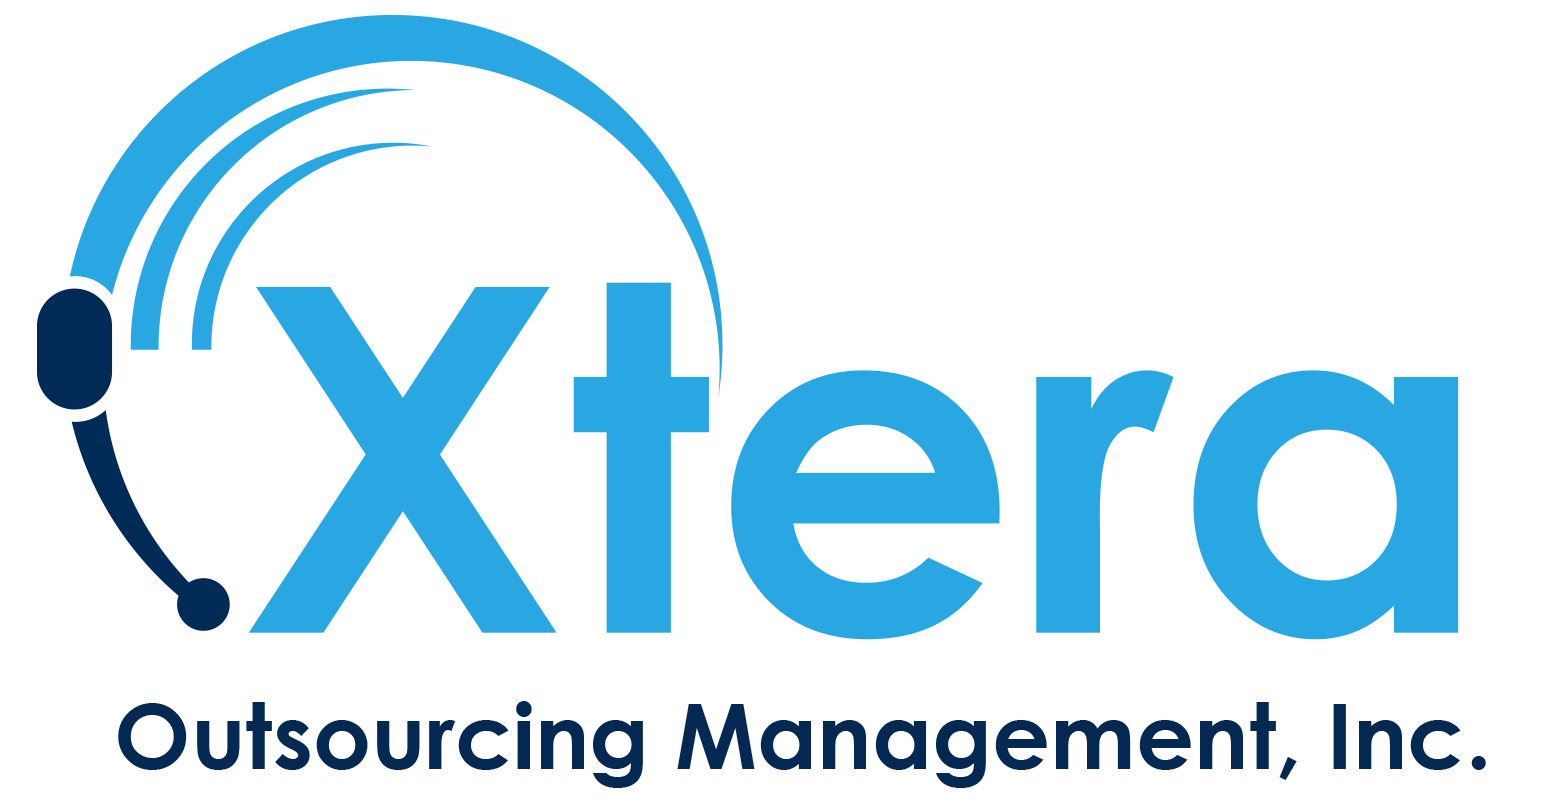 XTERA OUTSOURCING MANAGEMENT INC.